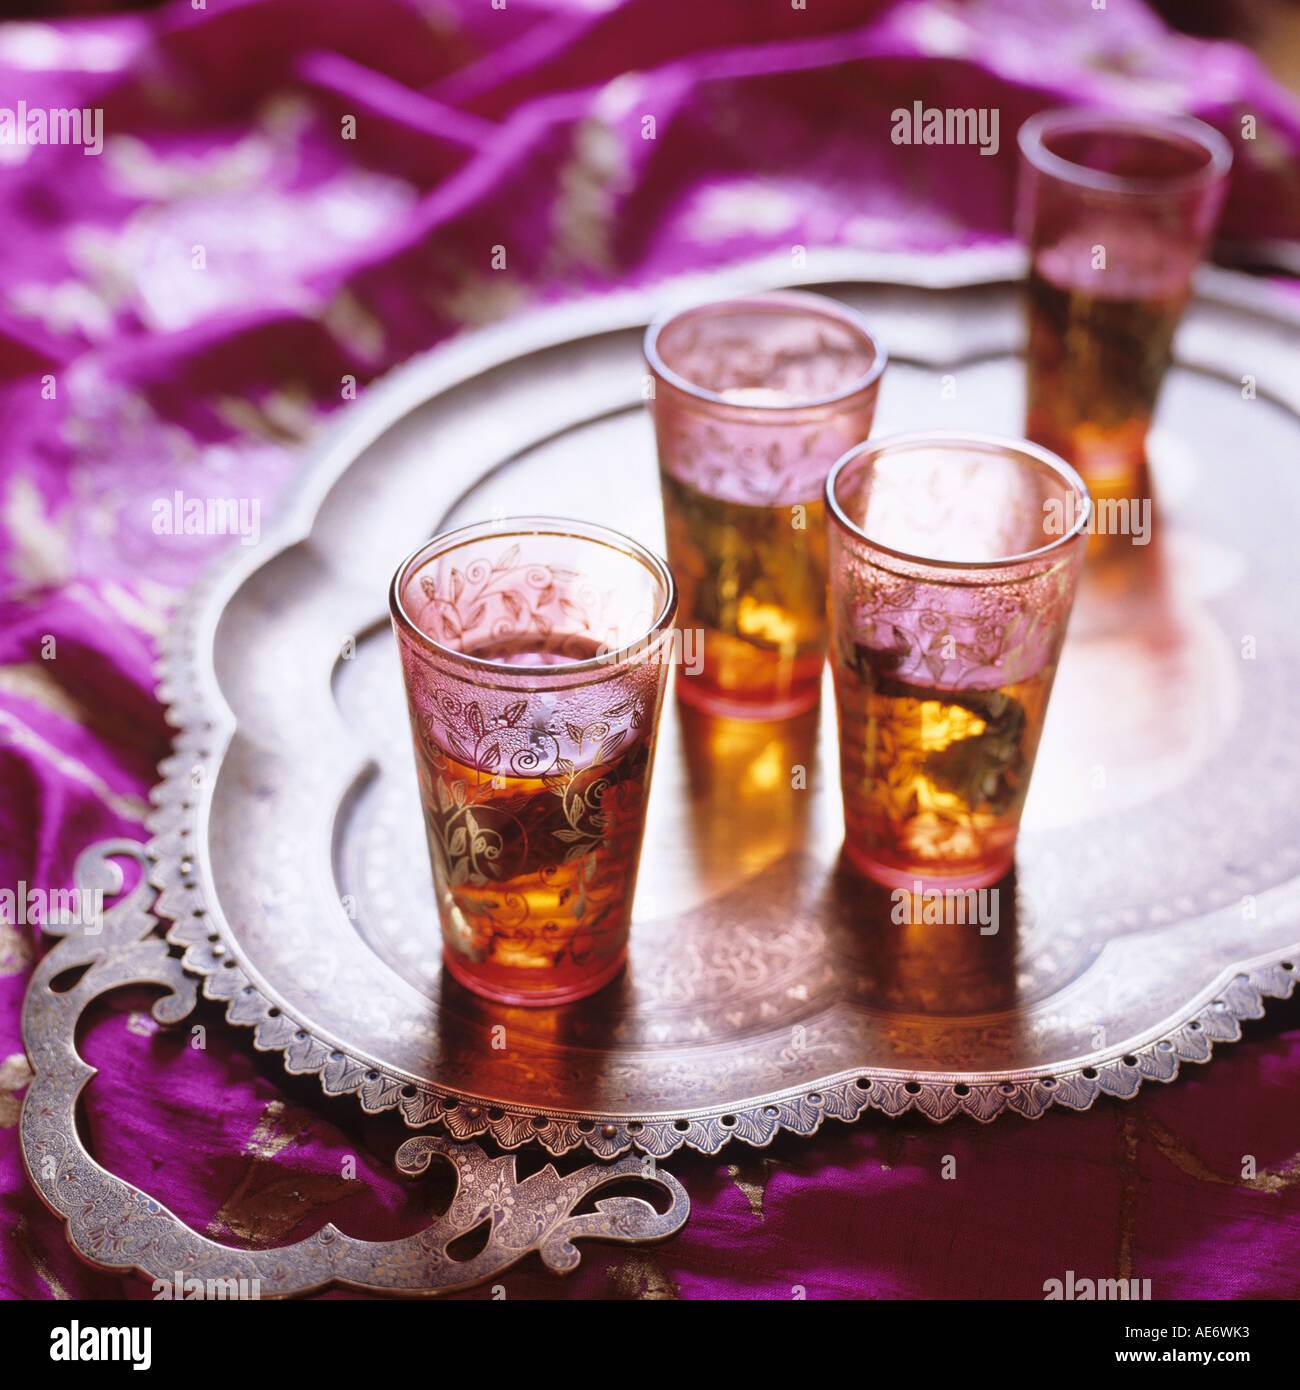 Middle eastern small glasses with mint tea on a tray Stock Photo